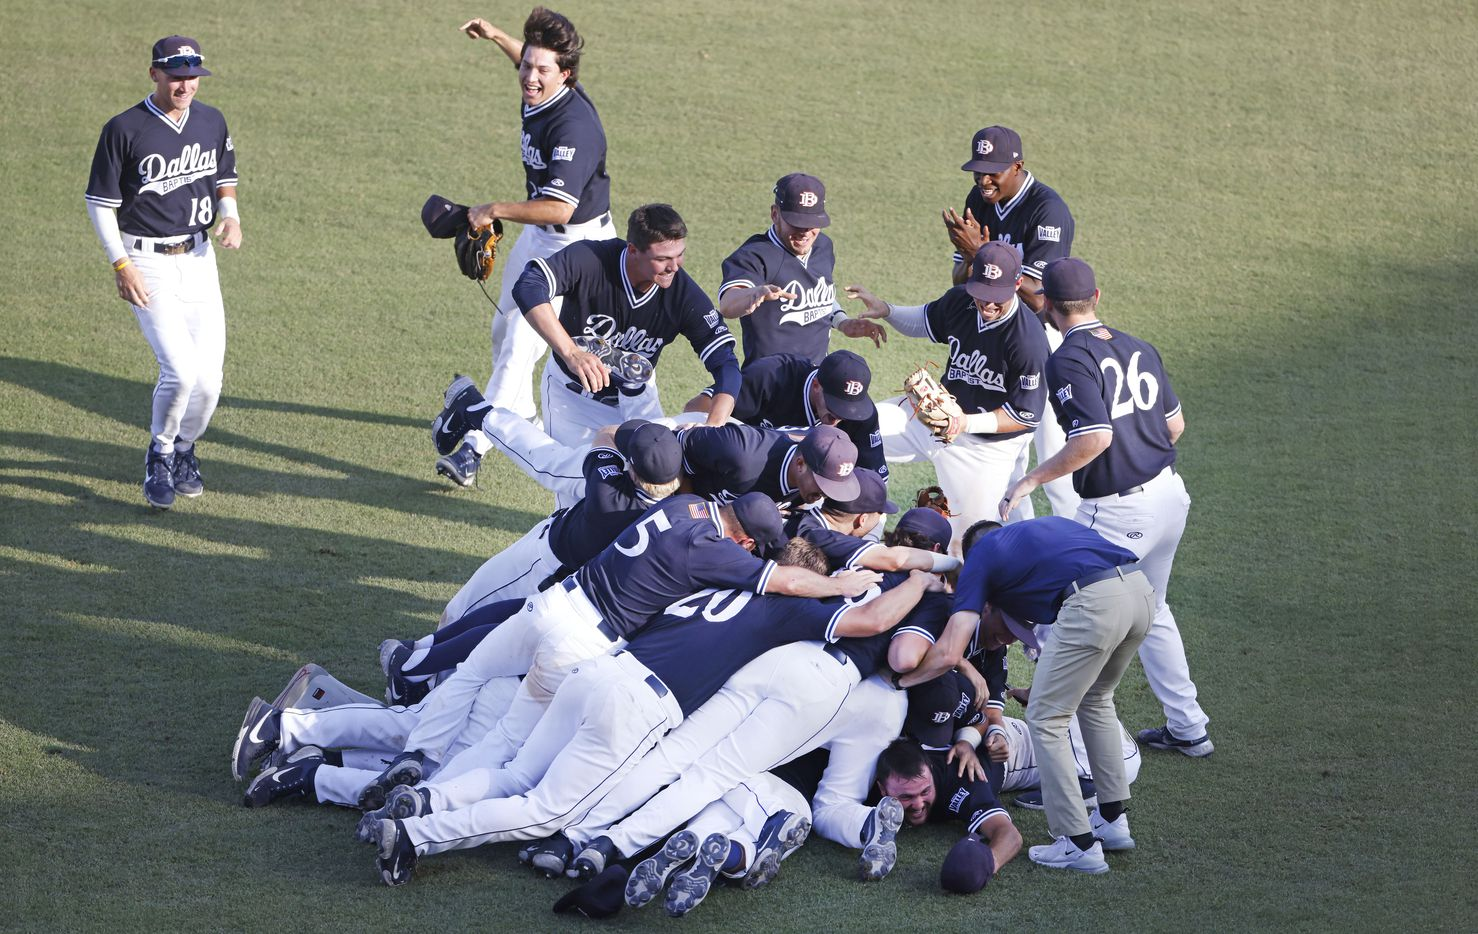 Dallas Baptist celebrates their 8-5 win over Oregon St. following the NCAA Division I Baseball Regional Championship game in Fort Worth, Texas on June 7, 2021. (Ron Jenkins/Special Contributor)